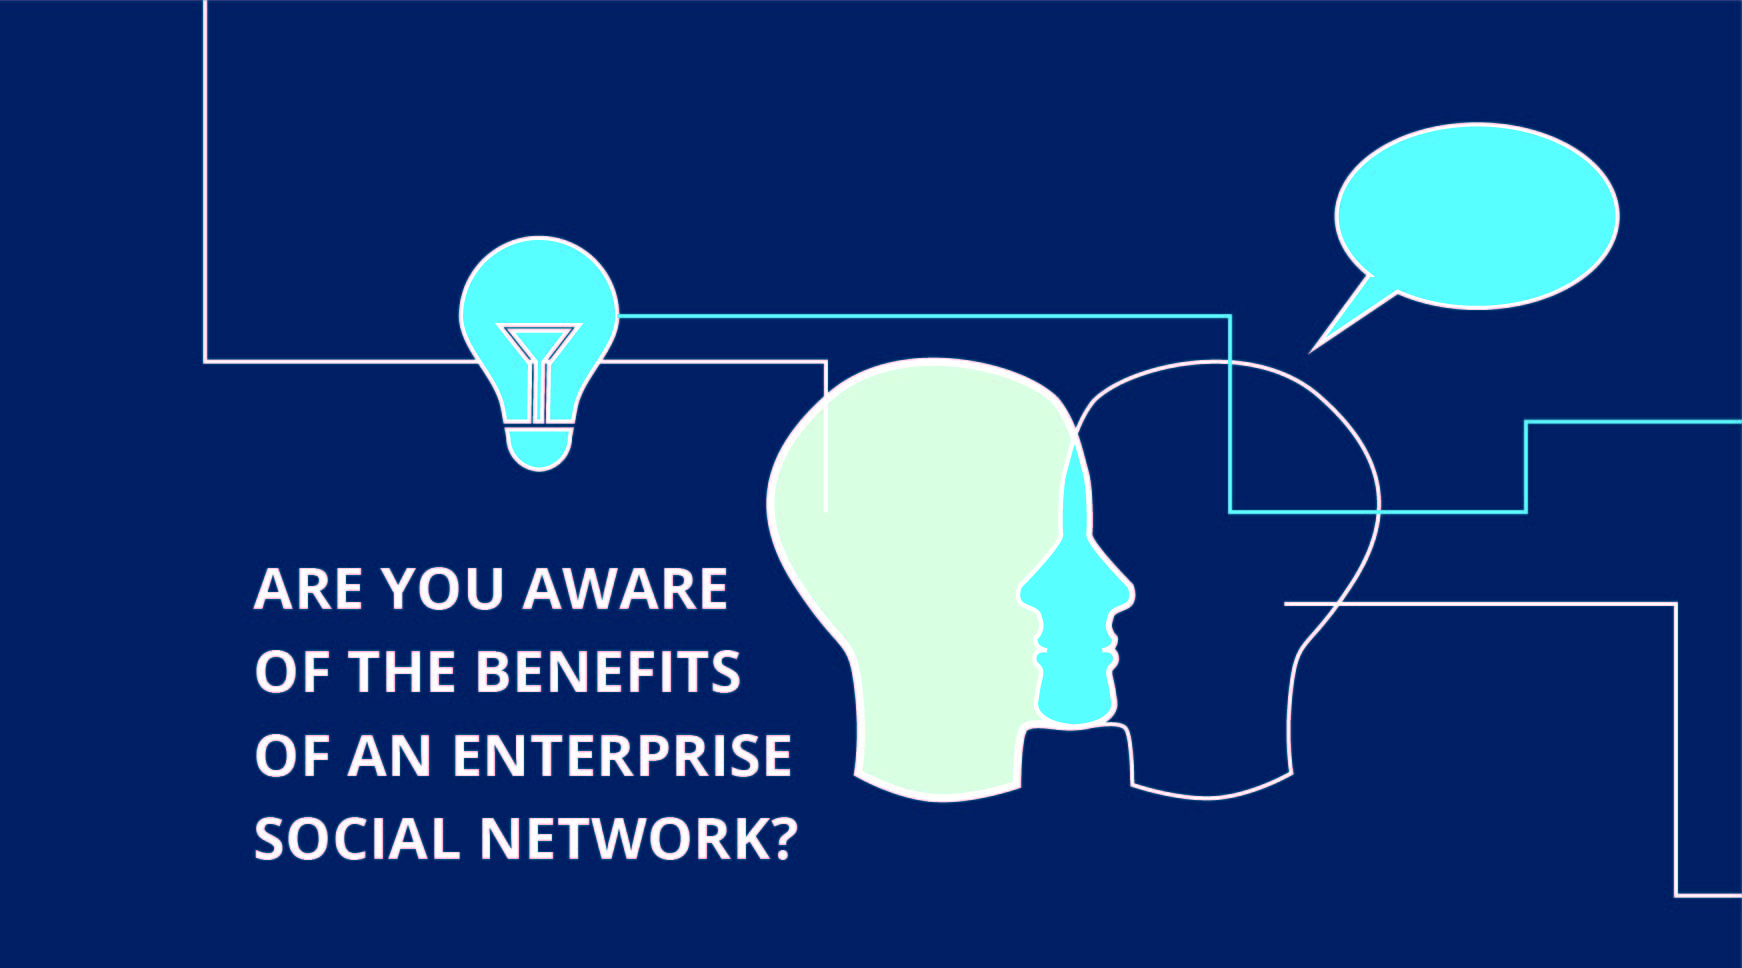 AXXCON Enterprise Social Network